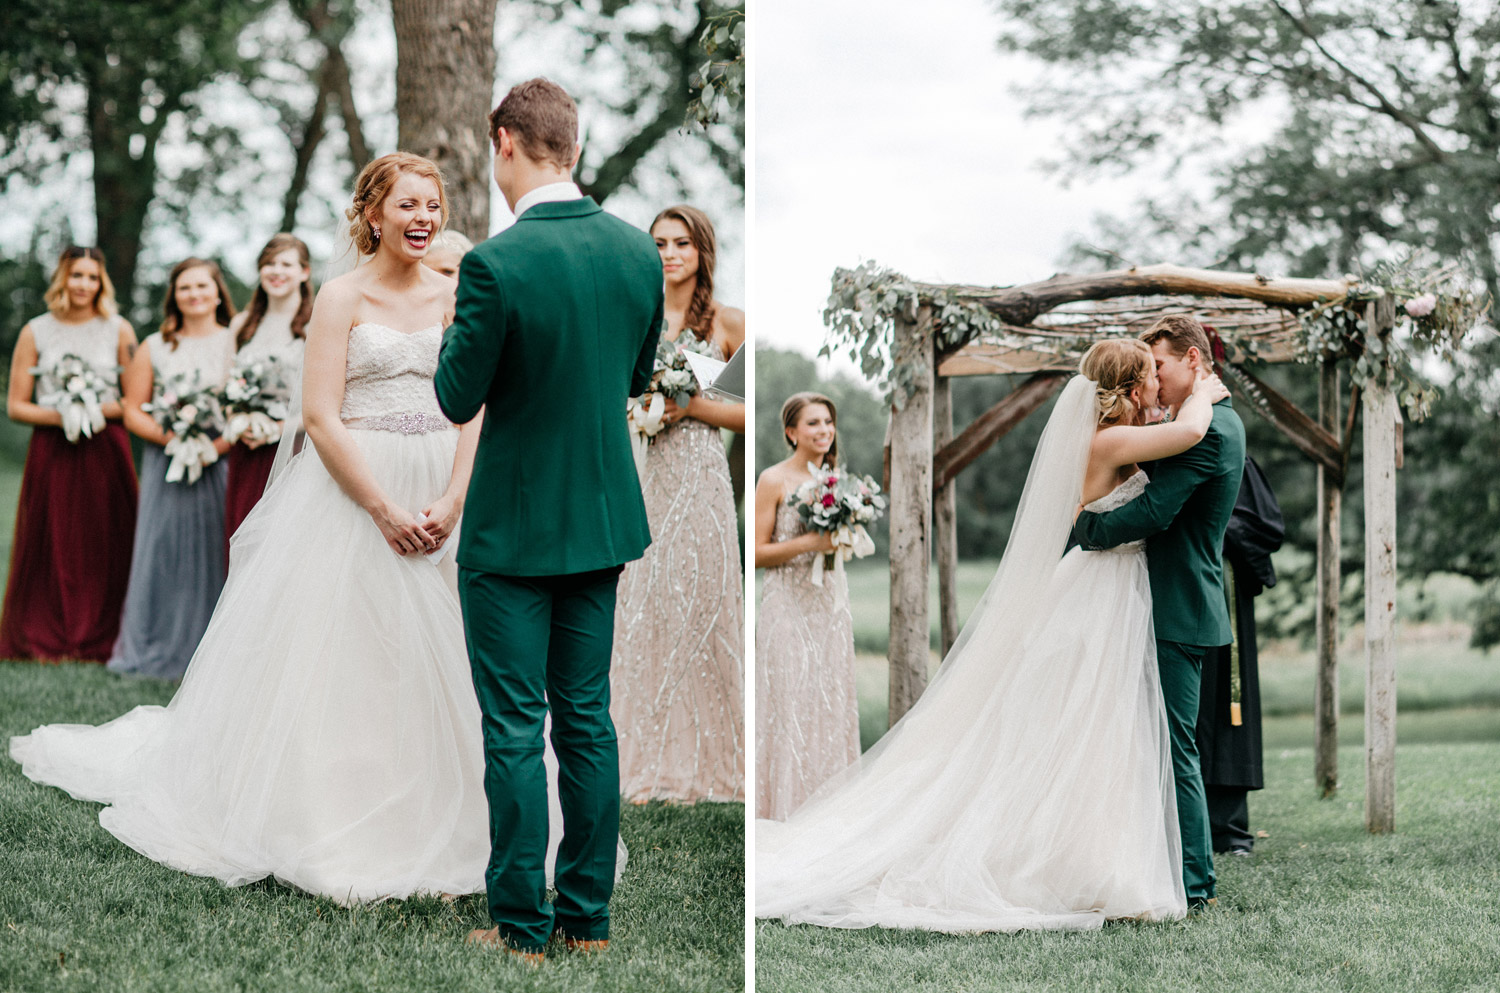 first kiss during outdoor ceremony at rustic oaks by geneoh photography